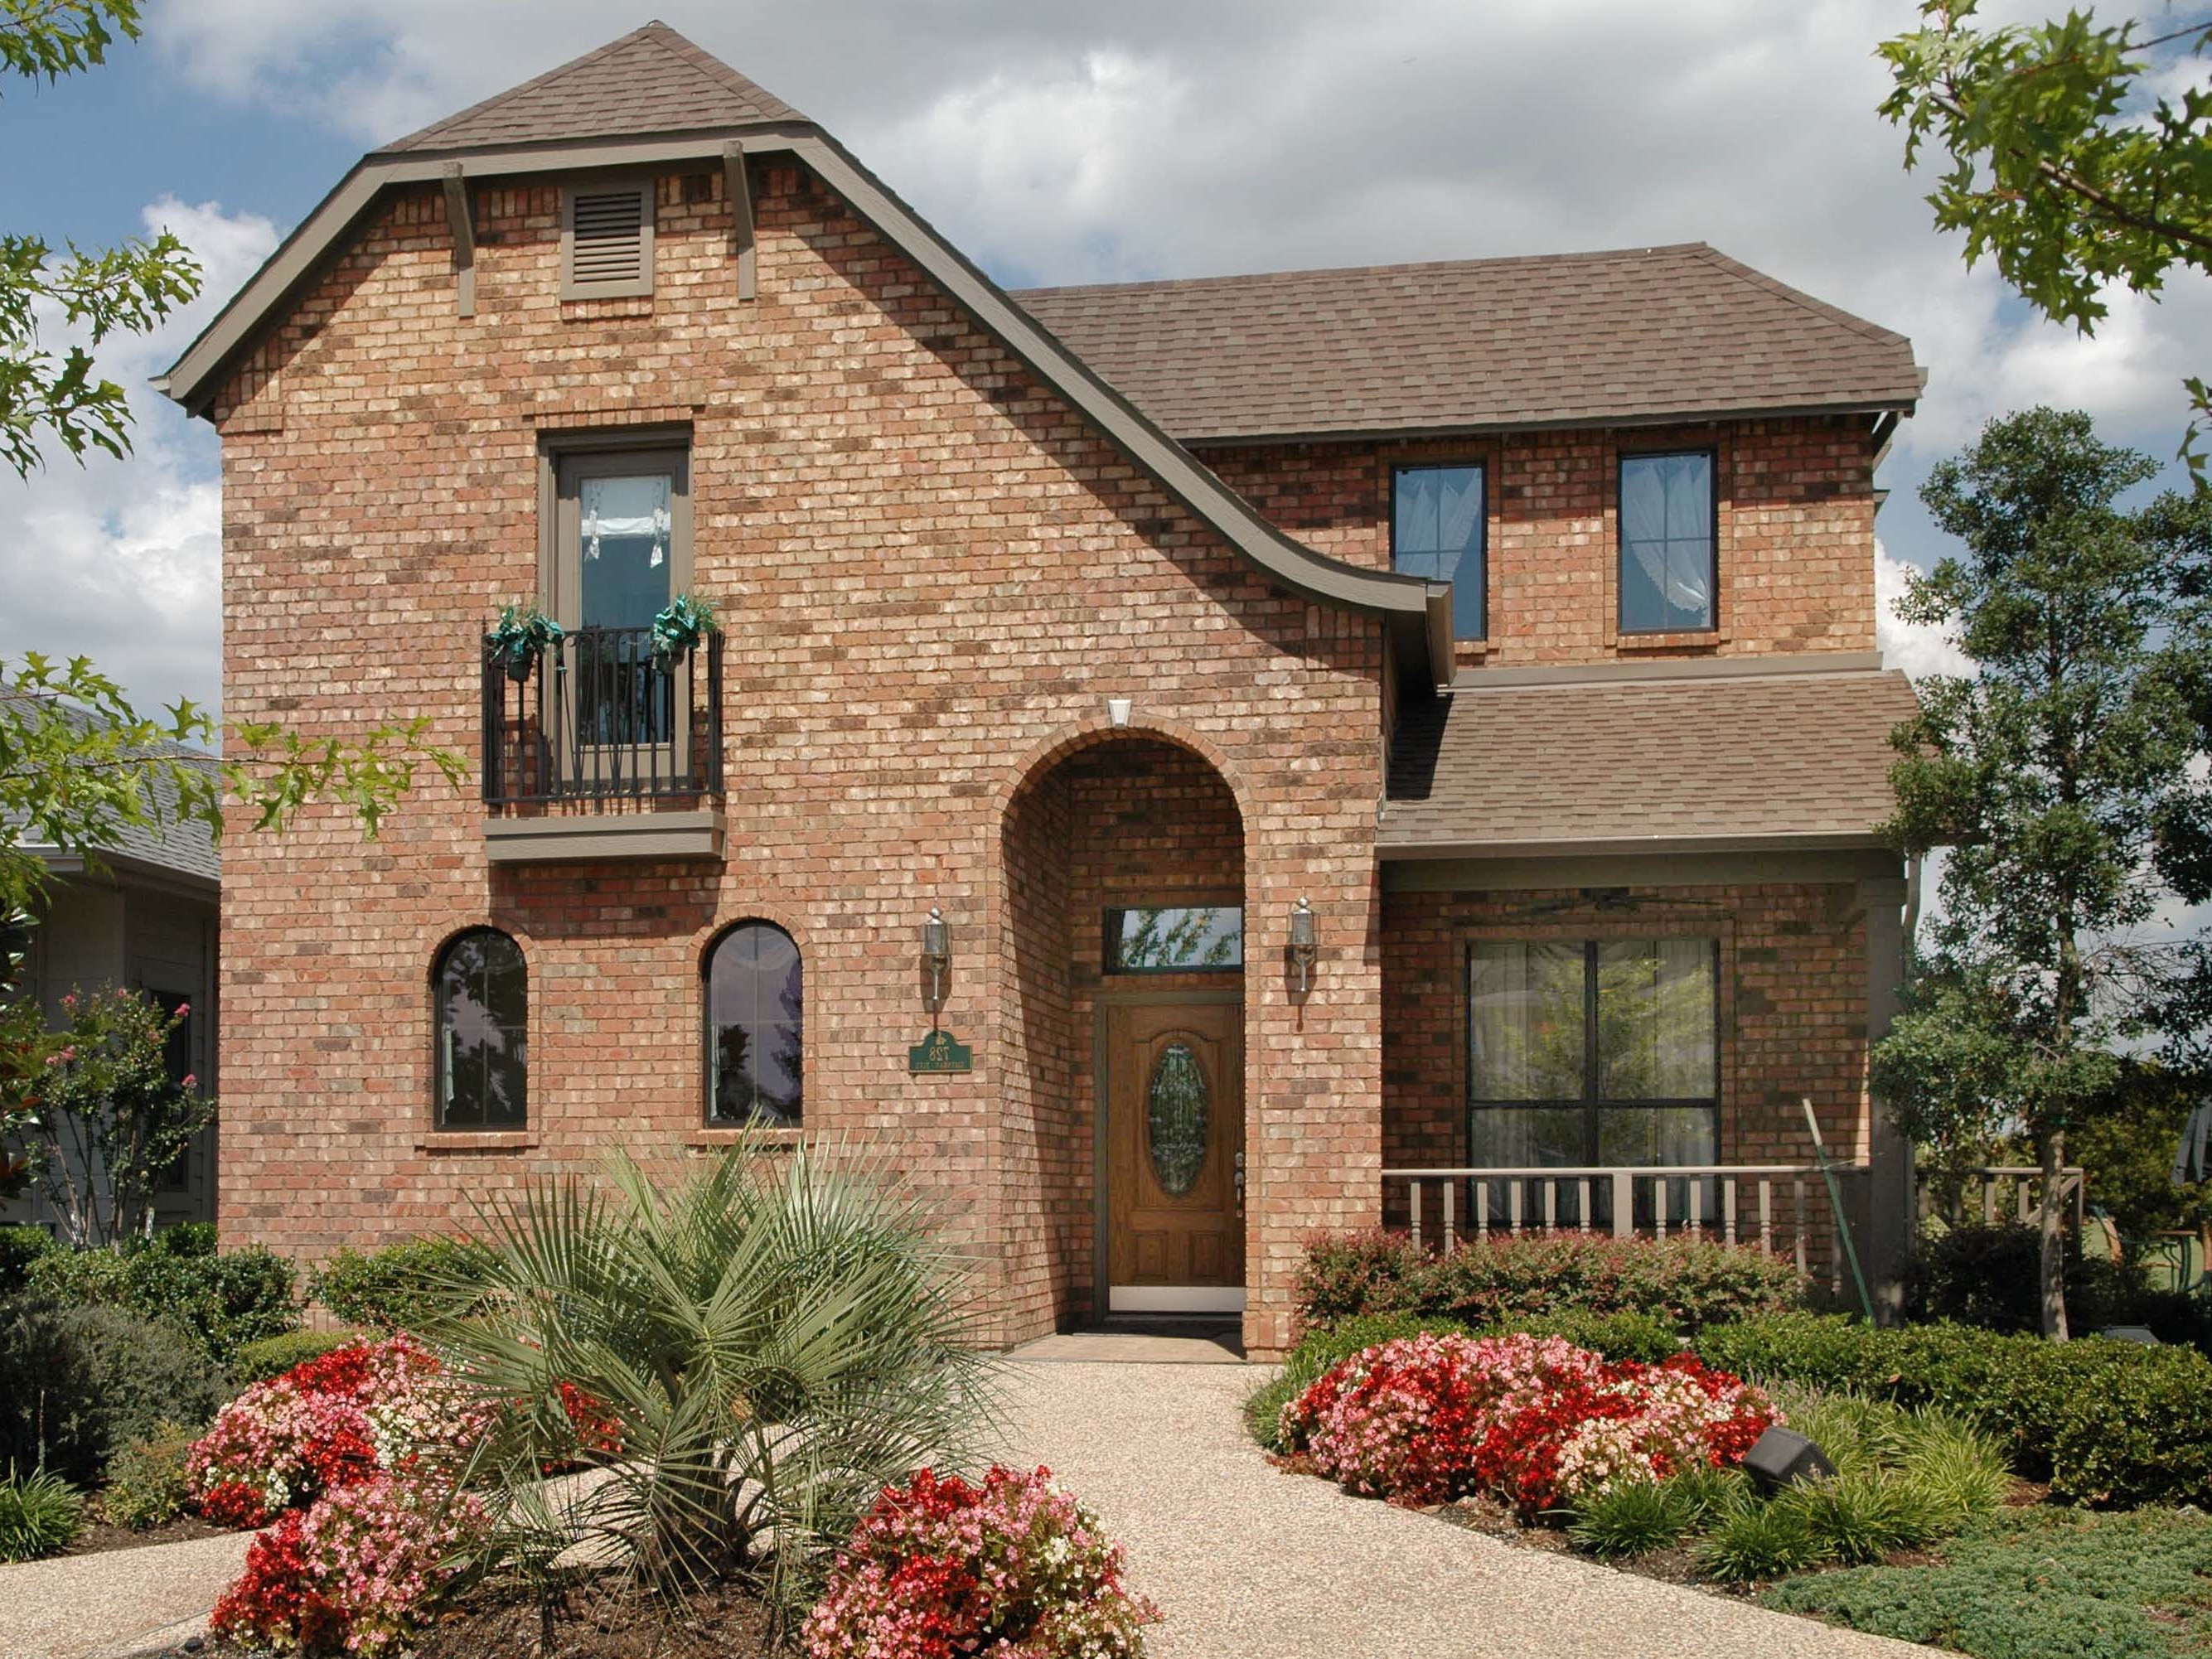 Beautiful Color Country Home Exterior With Brick Wall (Image 1 Of 23)